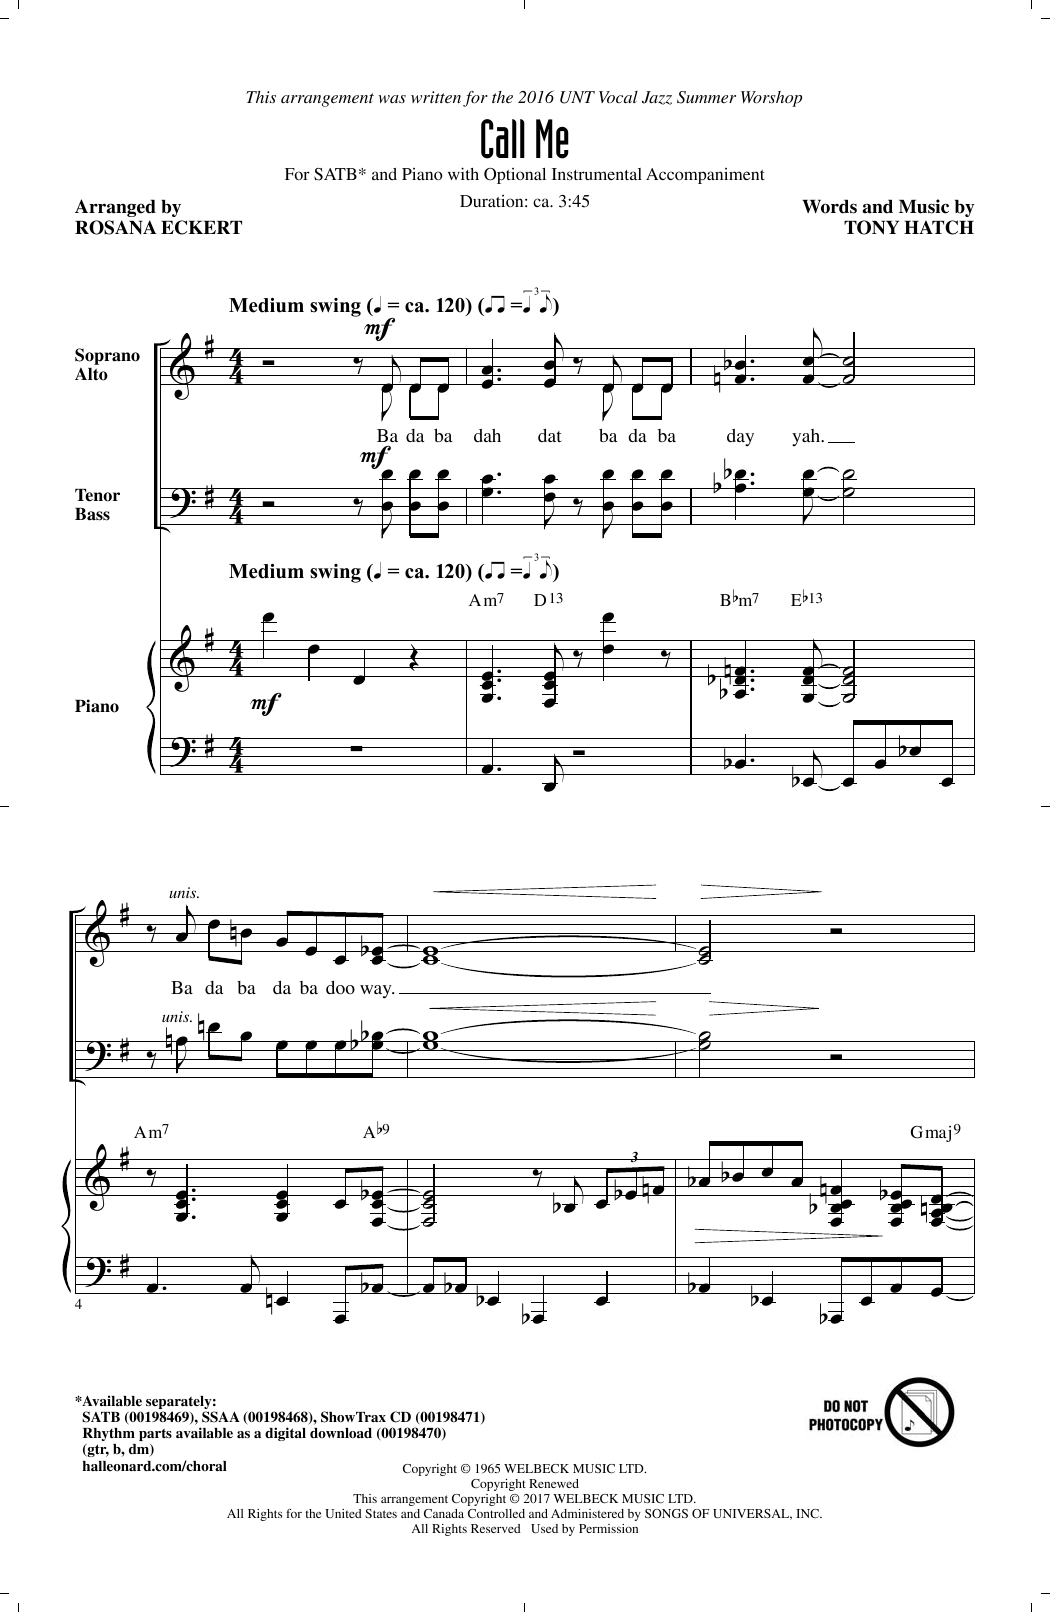 Call Me (arr. Rosana Eckert) (SATB Choir)